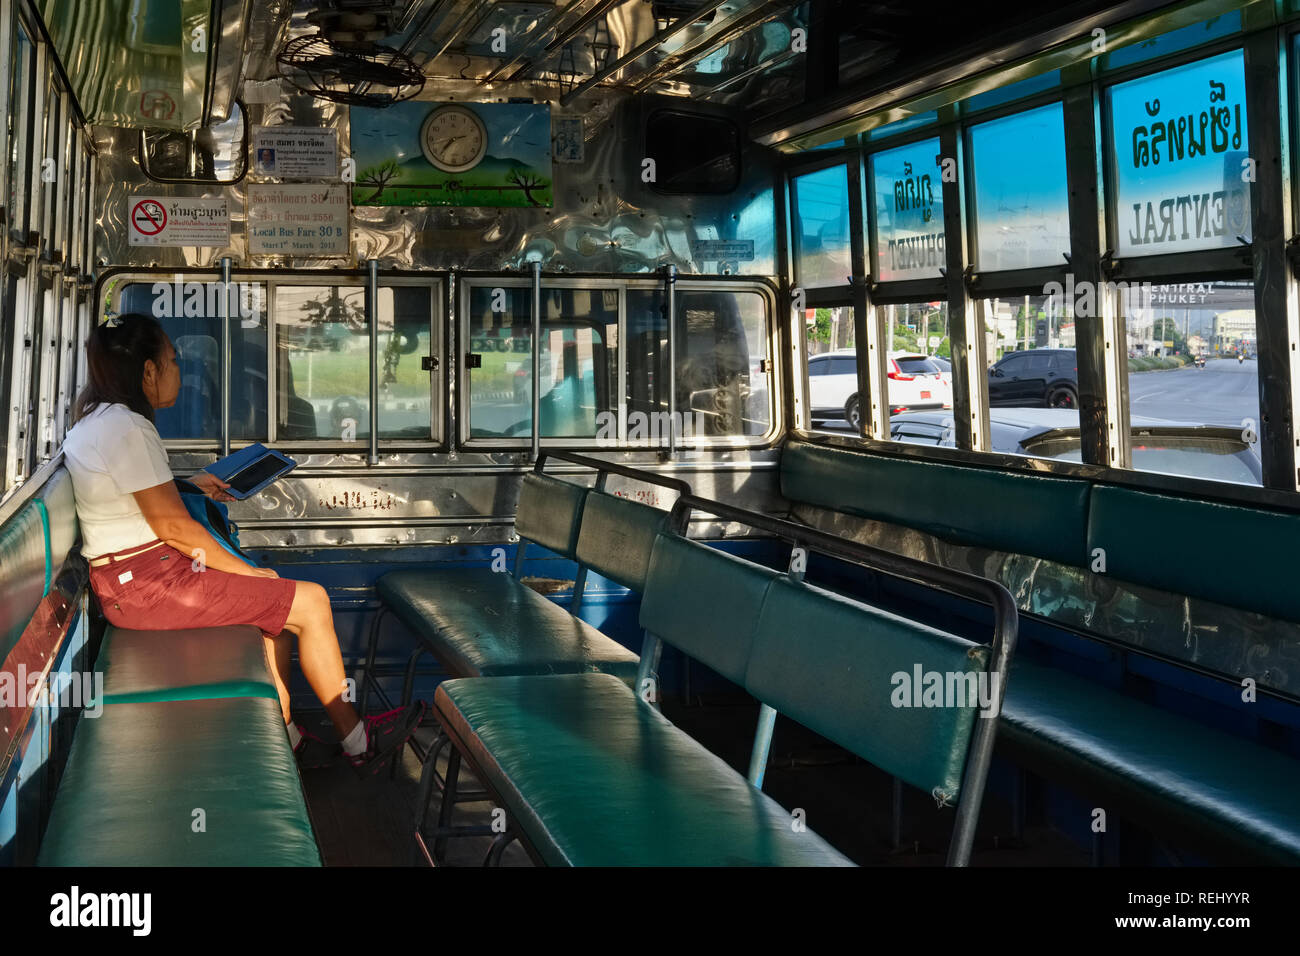 Seen inside a Songthaew (old-time local bus) going from Phuket Town to Patong Beach, Phuket, Thailand, a lone passenger reading on her mobile - Stock Image